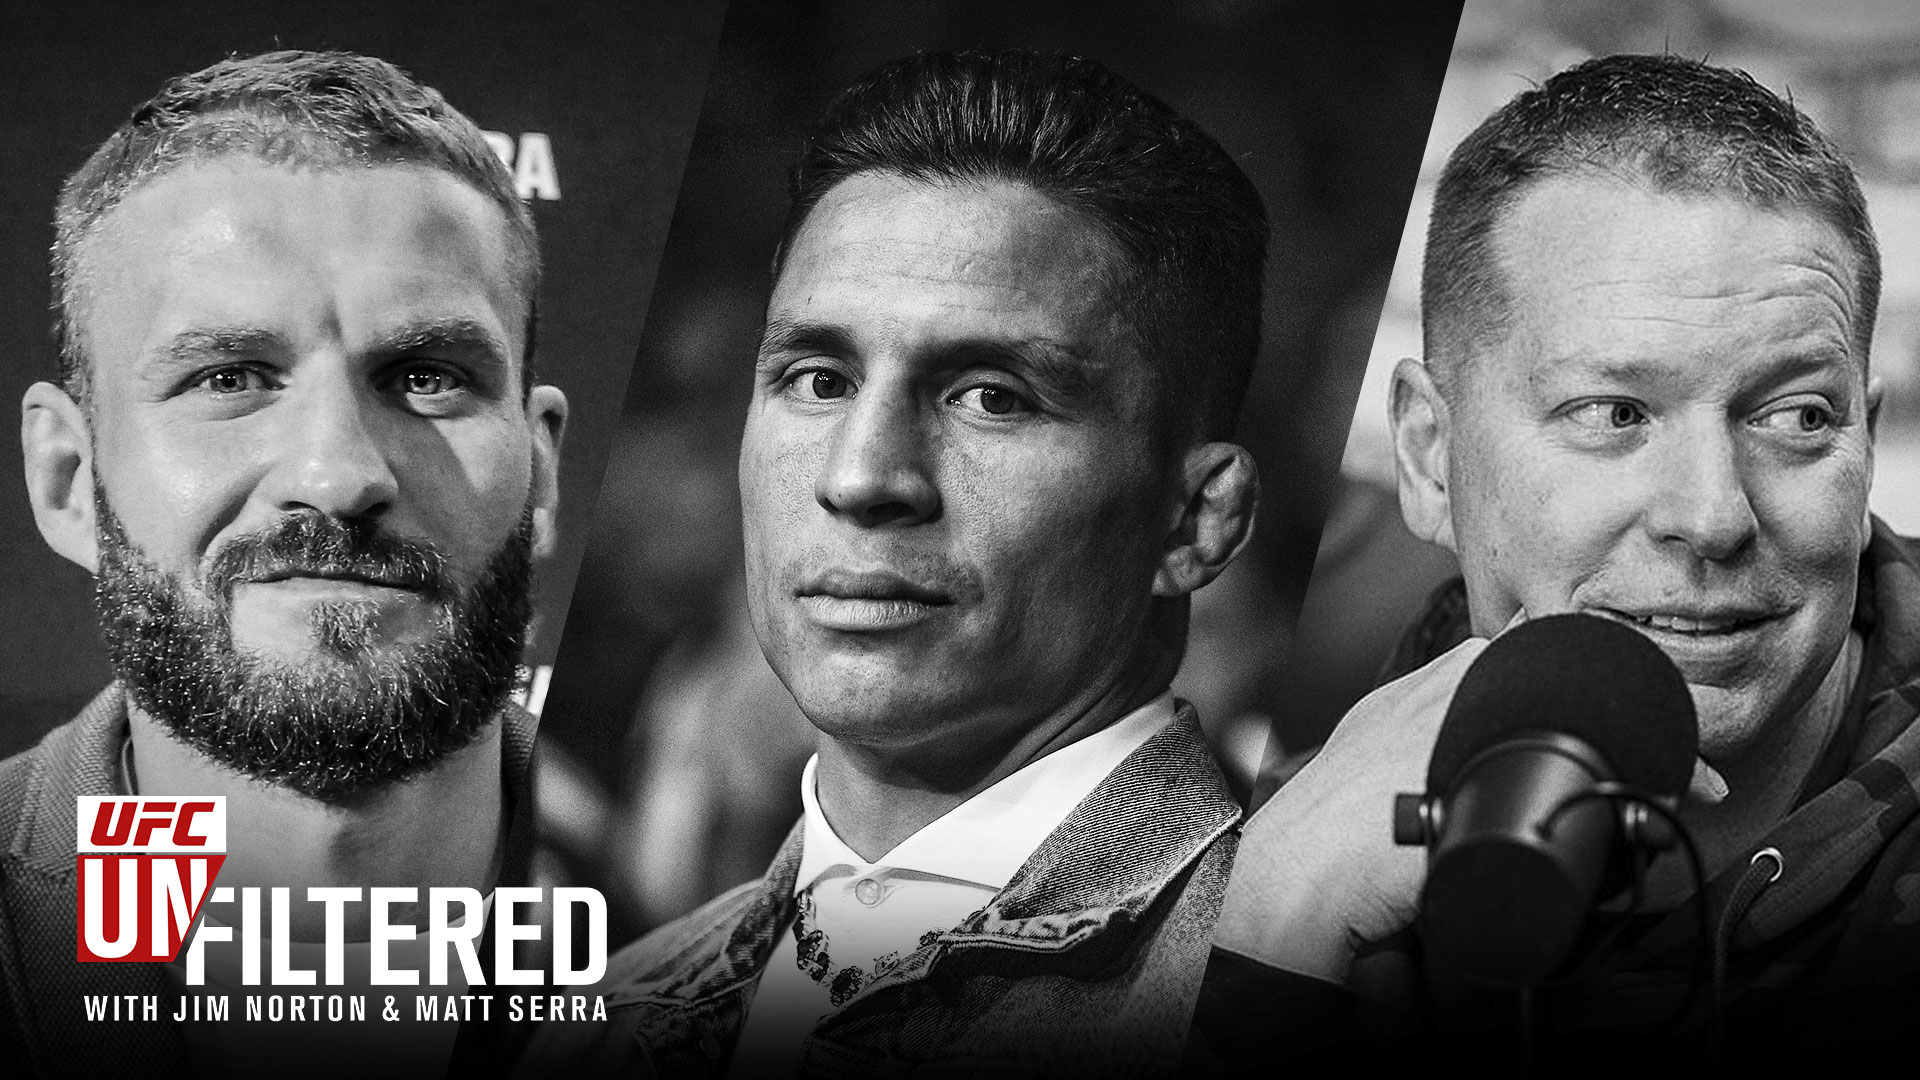 Unfiltered: UFC Light Heavyweight Champion Jan Blachowicz, Joseph Benavidez, and Comedian Gary Owen